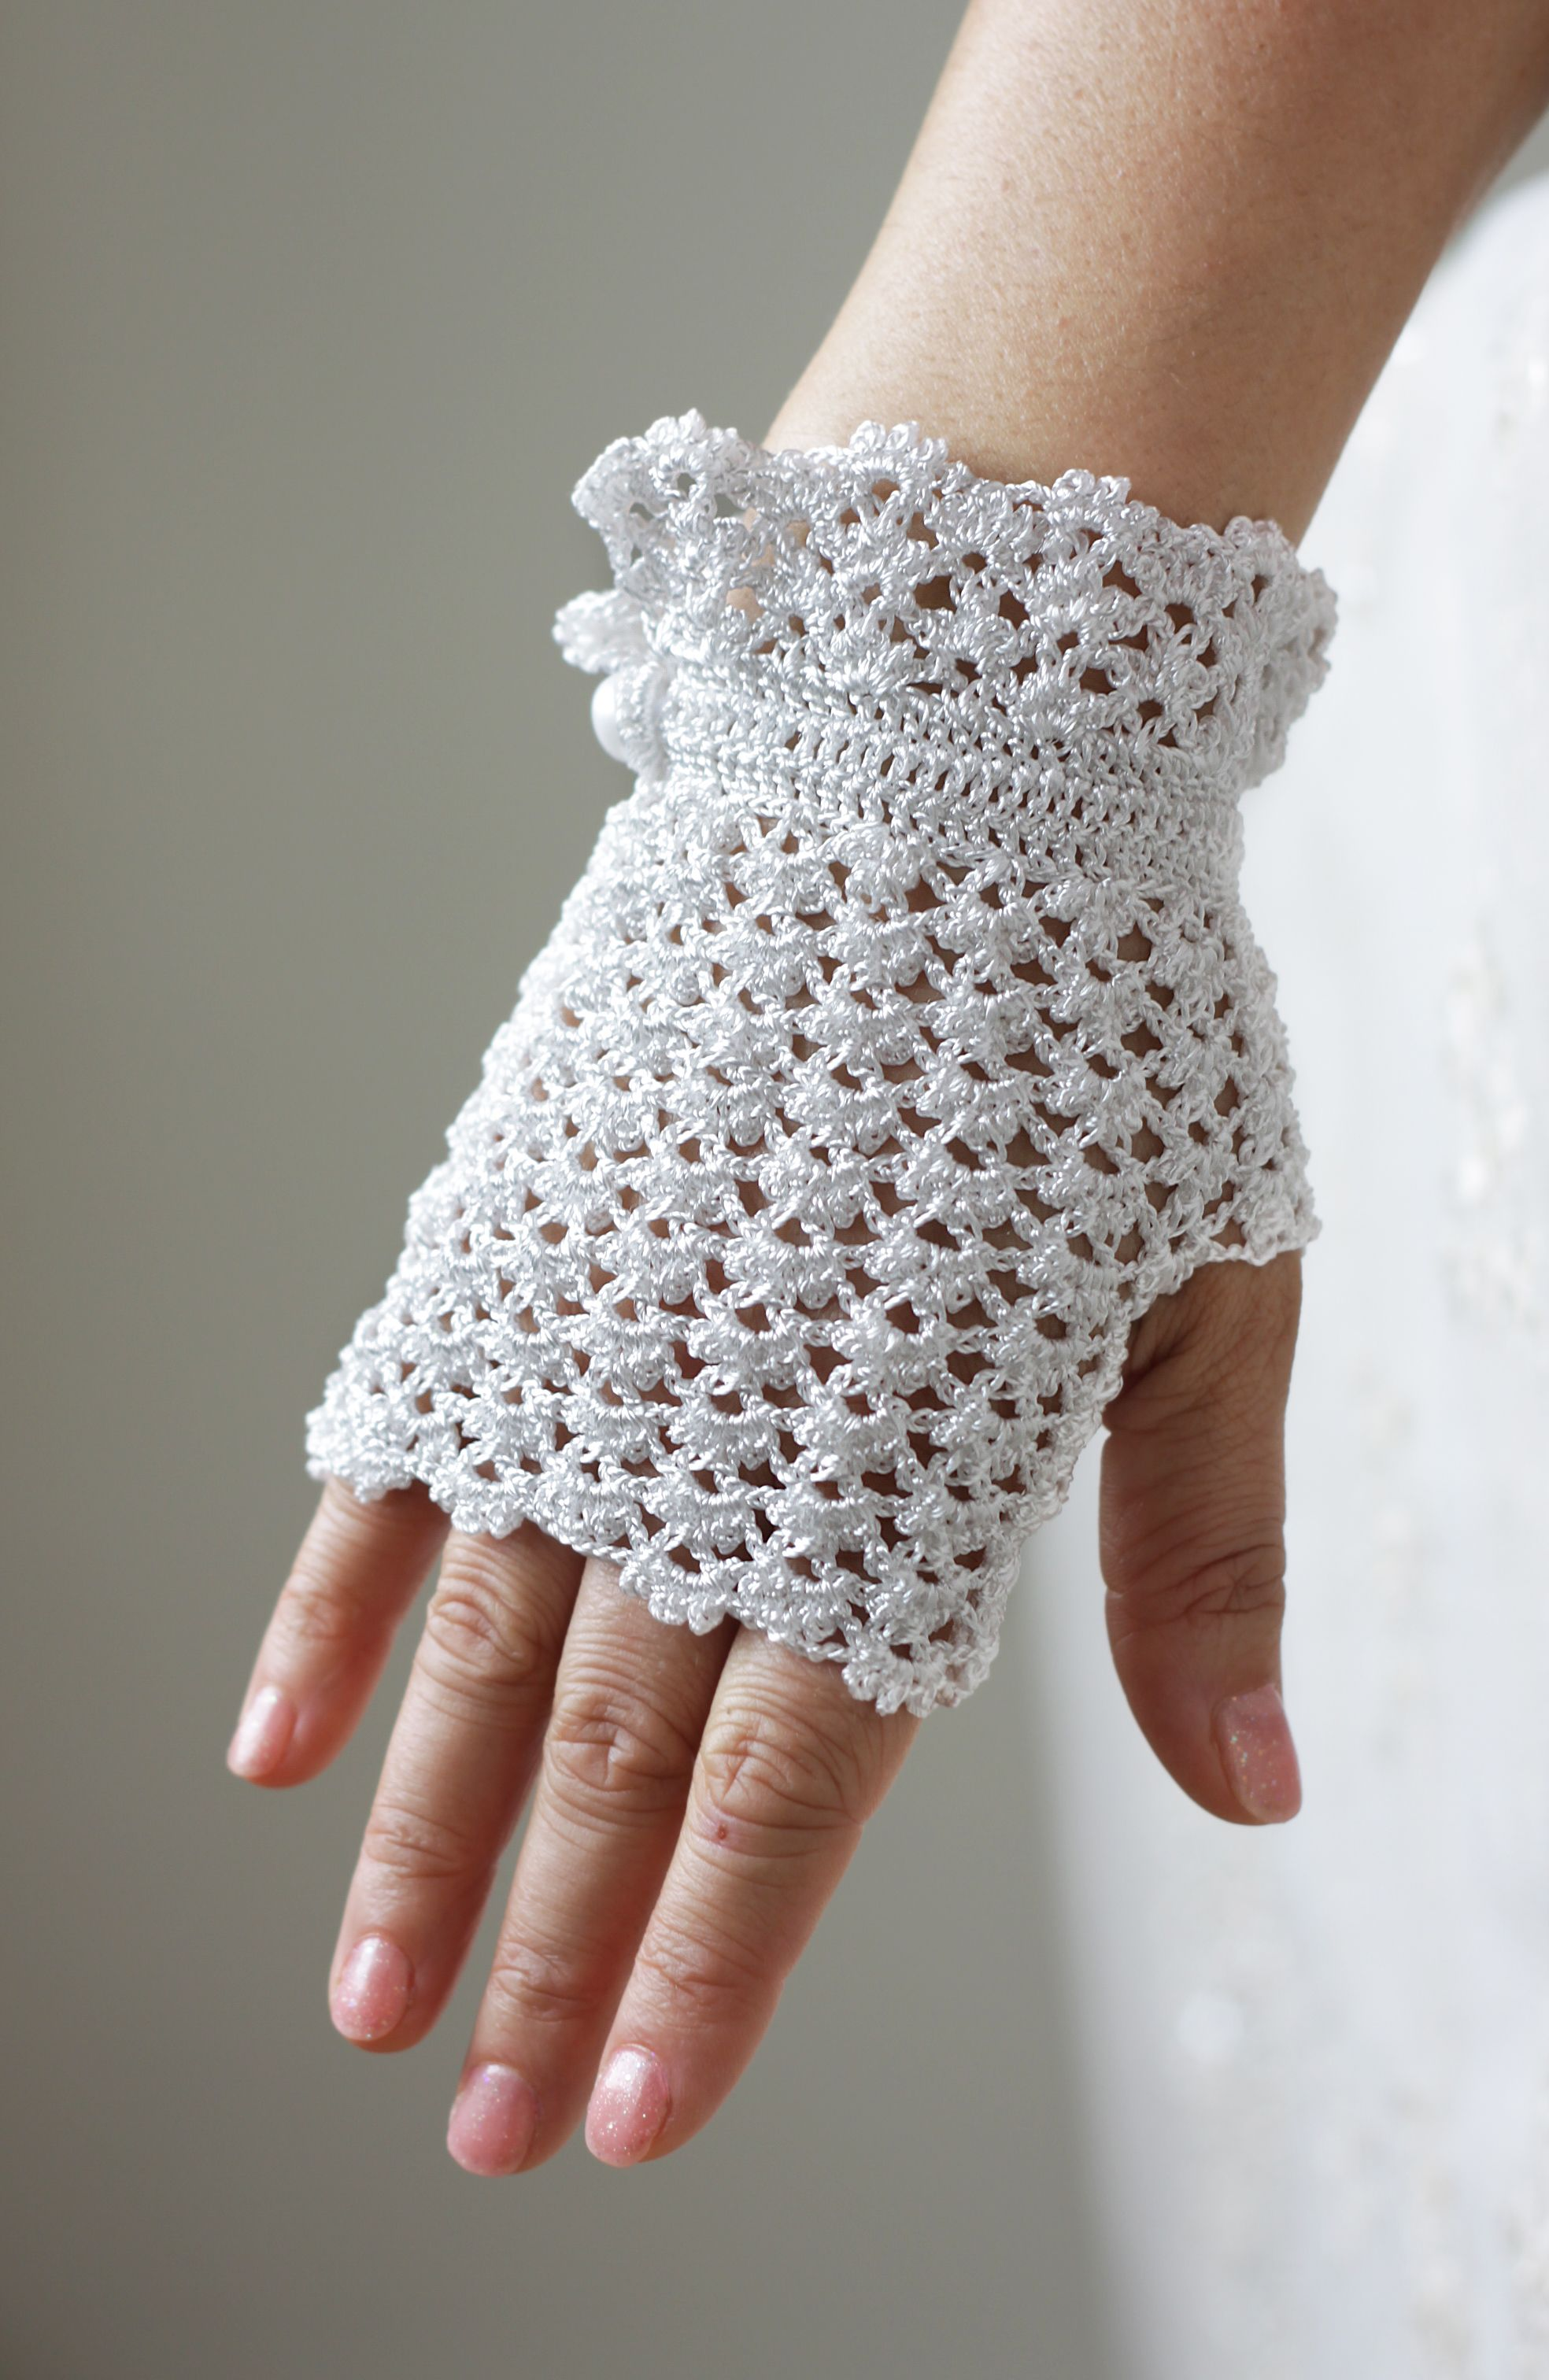 Ruffled fingerless gloves, Knit wrist warmers, Frilly wrist cuffs ...